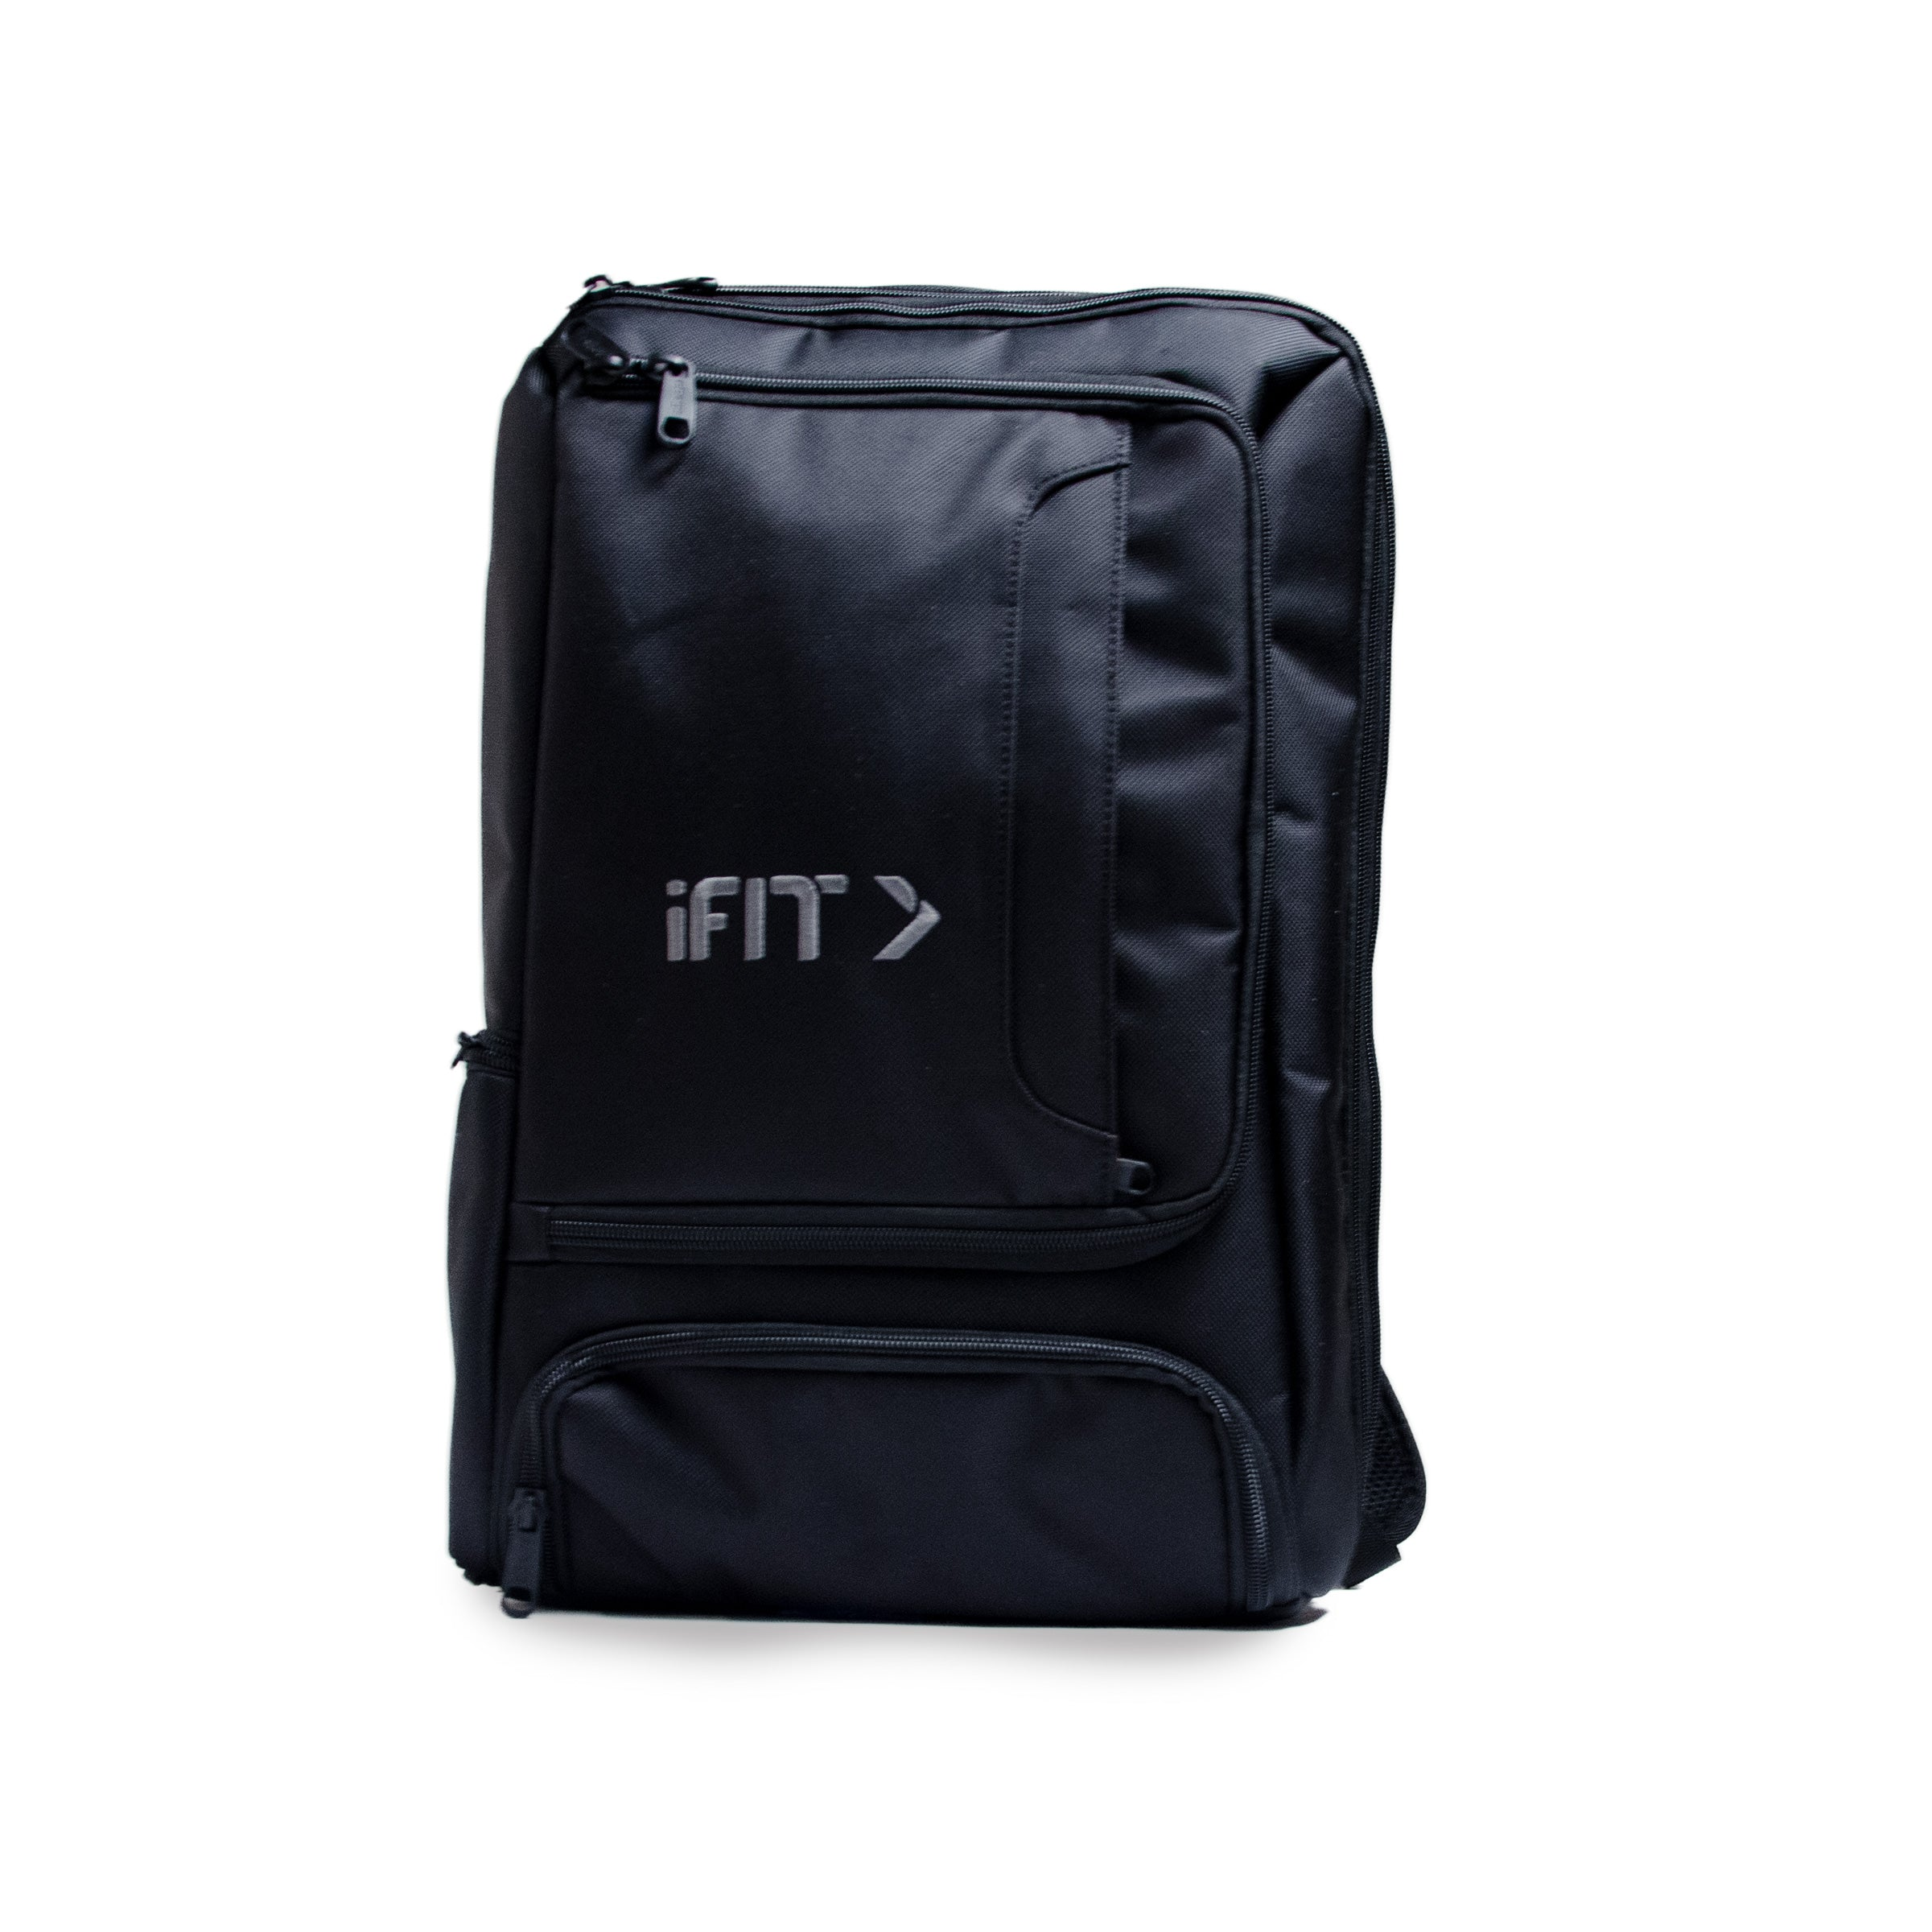 iFit Professional Slim Backpack